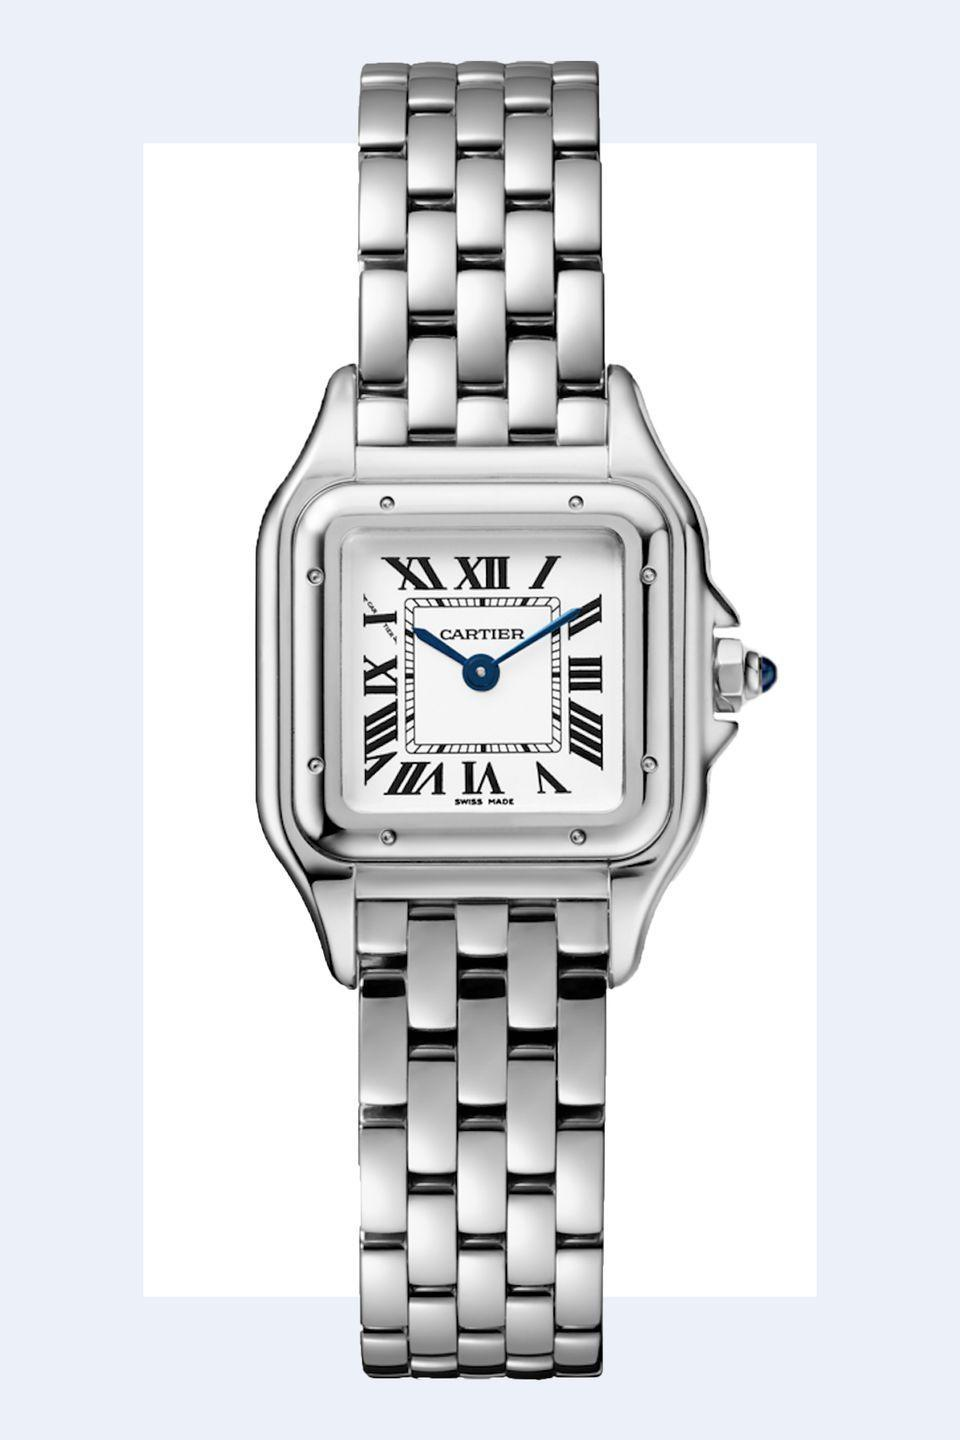 """<p><a rel=""""nofollow noopener"""" href=""""https://www.cartier.com/en-us/collections/watches/womens-watches/panth%C3%A8re-de-cartier/wspn0006-panth%C3%A8re-de-cartier-watch.html?gclid=CjwKCAjwoMPcBRAWEiwAiAqZhzmrcH6P9VsOu0VabjZXJpX6FLIAYo2m8Q7a4IFRQW_4OvWvlyDwdBoC0EMQAvD_BwE&gclsrc=aw.ds&dclid=CJ_TxpHmpt0CFQ-dyAod5KYCiA"""" target=""""_blank"""" data-ylk=""""slk:SHOP NOW"""" class=""""link rapid-noclick-resp"""">SHOP NOW</a> <em>Cartier Watch, $4,000</em></p><p>""""<strong>Fashion is always changing</strong> but you should be sure to have a nice watch. Maybe you can't afford a classic Cartier tank, but if you know what it looks like then you can easily find something similar."""" -<em><a rel=""""nofollow noopener"""" href=""""https://www.studiocavaco.com/"""" target=""""_blank"""" data-ylk=""""slk:Paul Cavaco"""" class=""""link rapid-noclick-resp"""">Paul Cavaco</a></em></p>"""